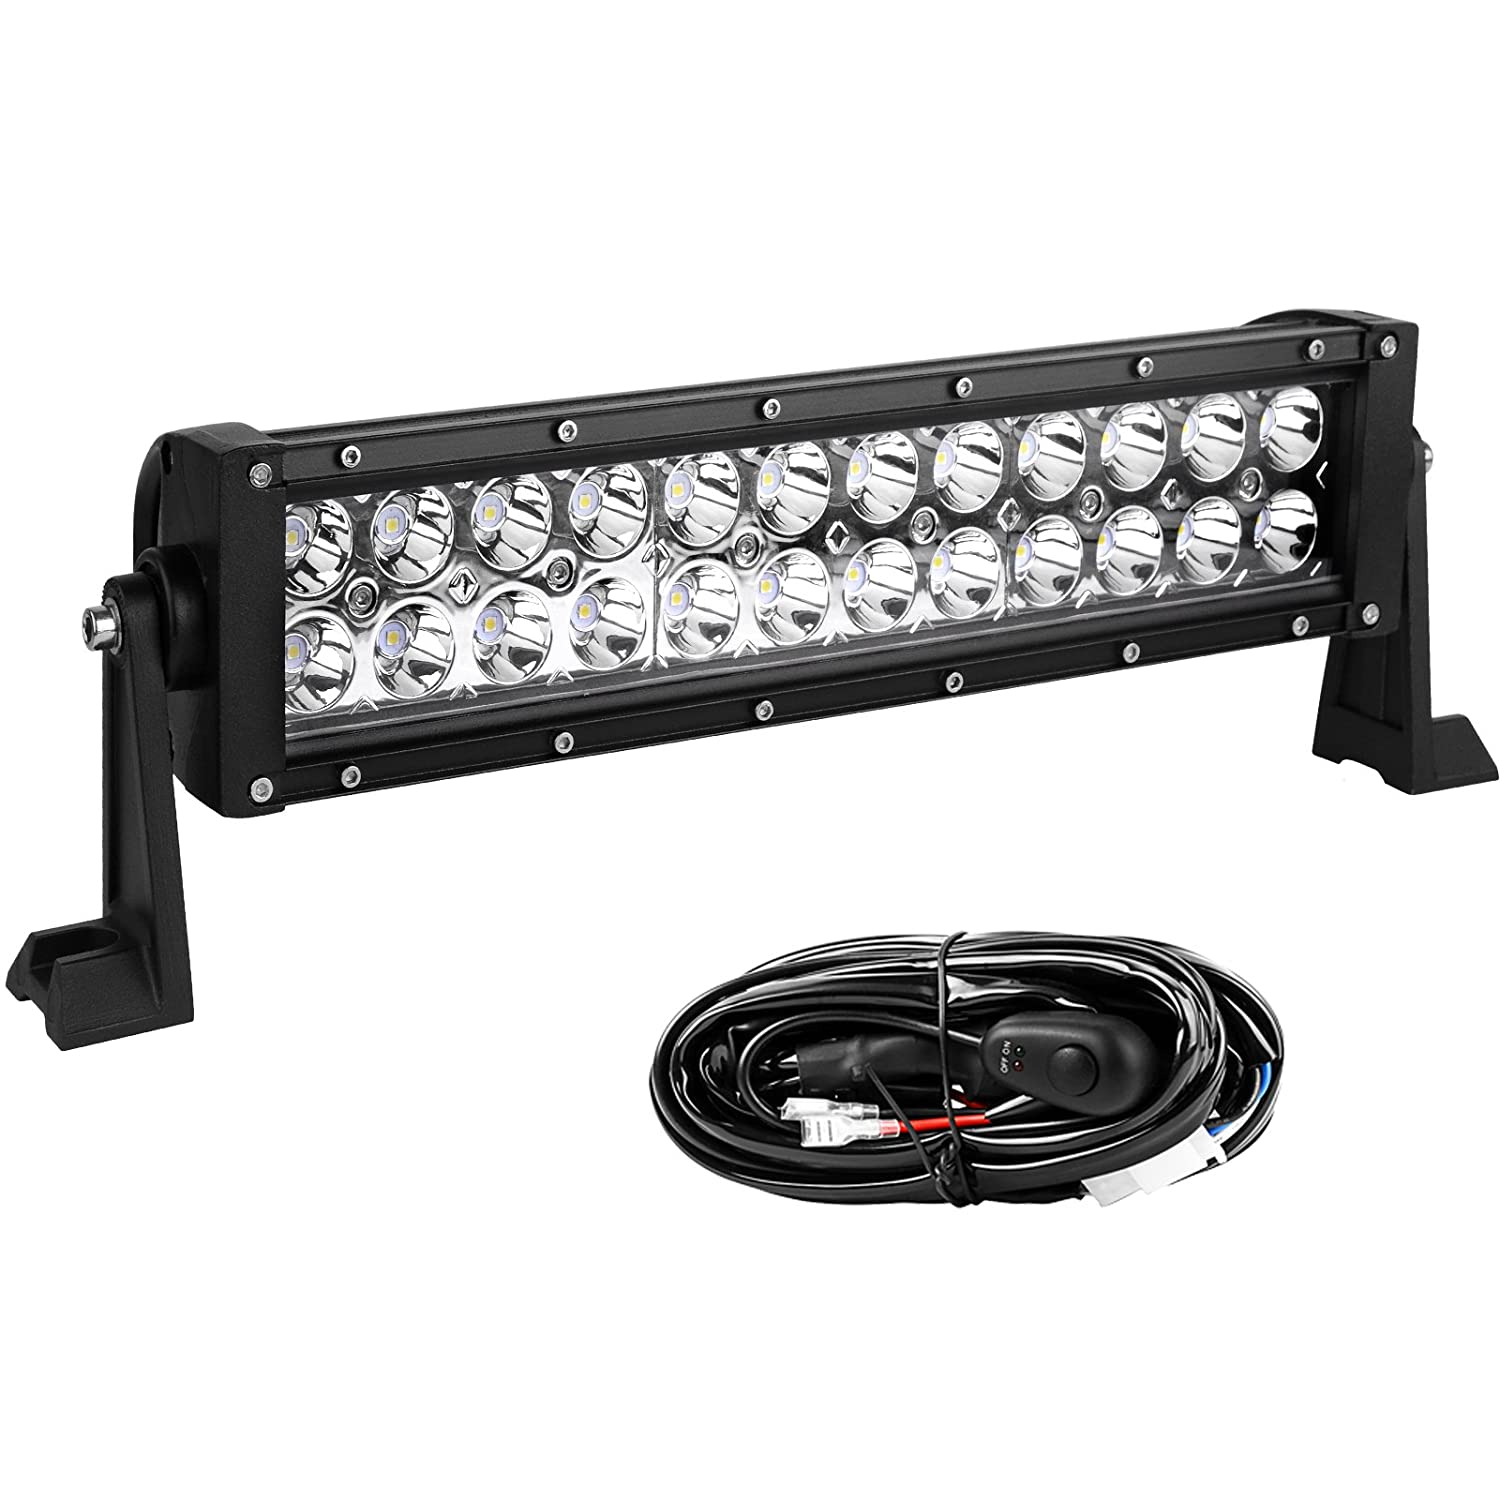 Outlet Led Light Pod Yitamotor 12inch 72w Bar Wiring Lightbar Harness Spot Work